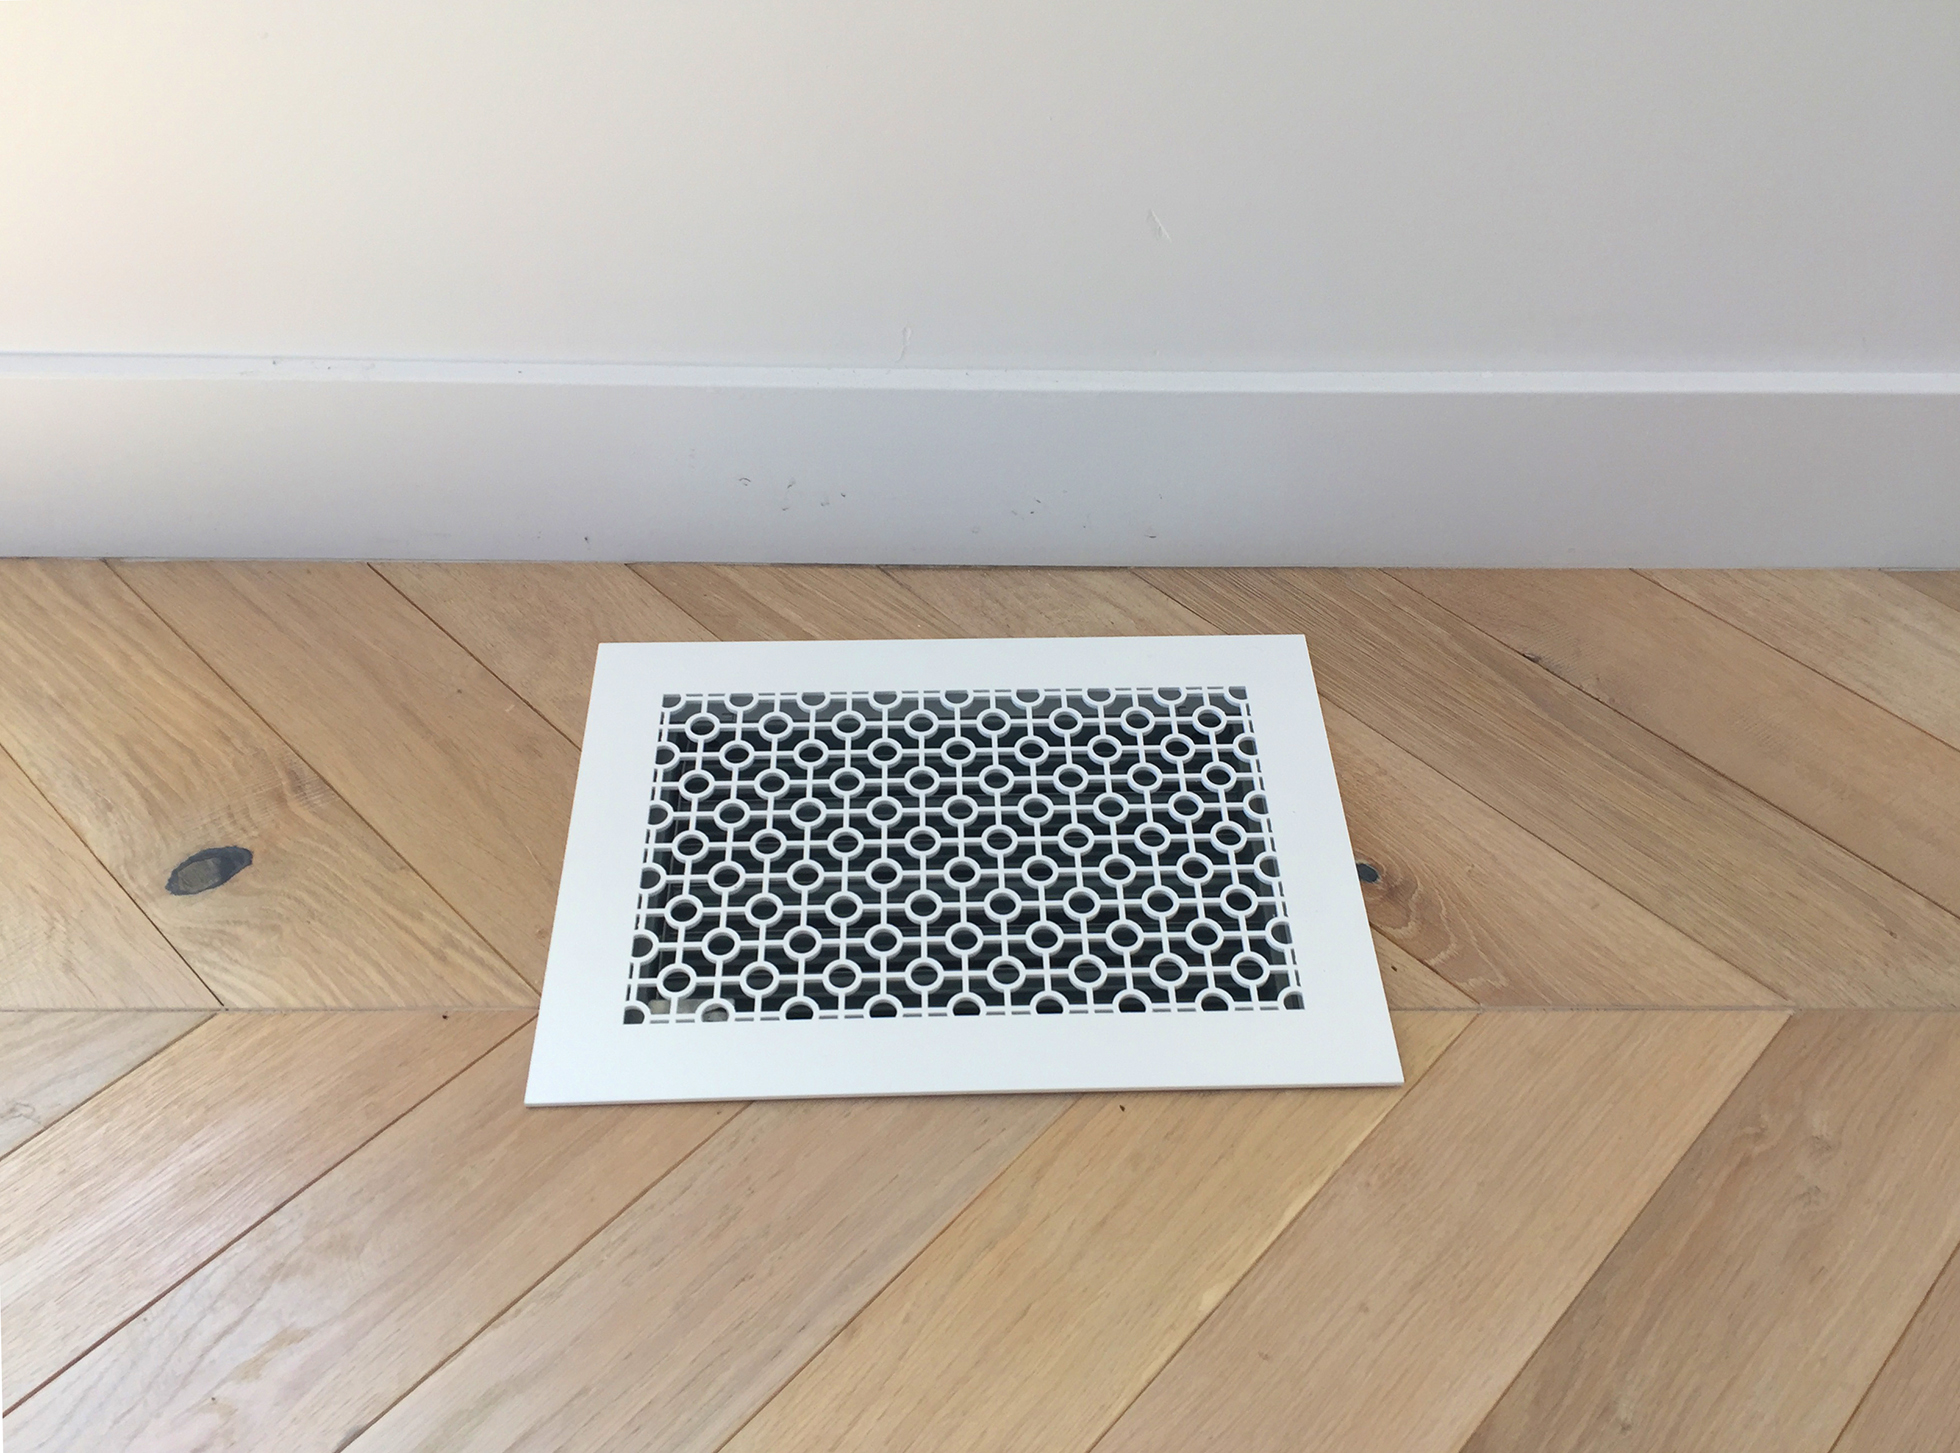 White metal floor vent in herringbone wood floor